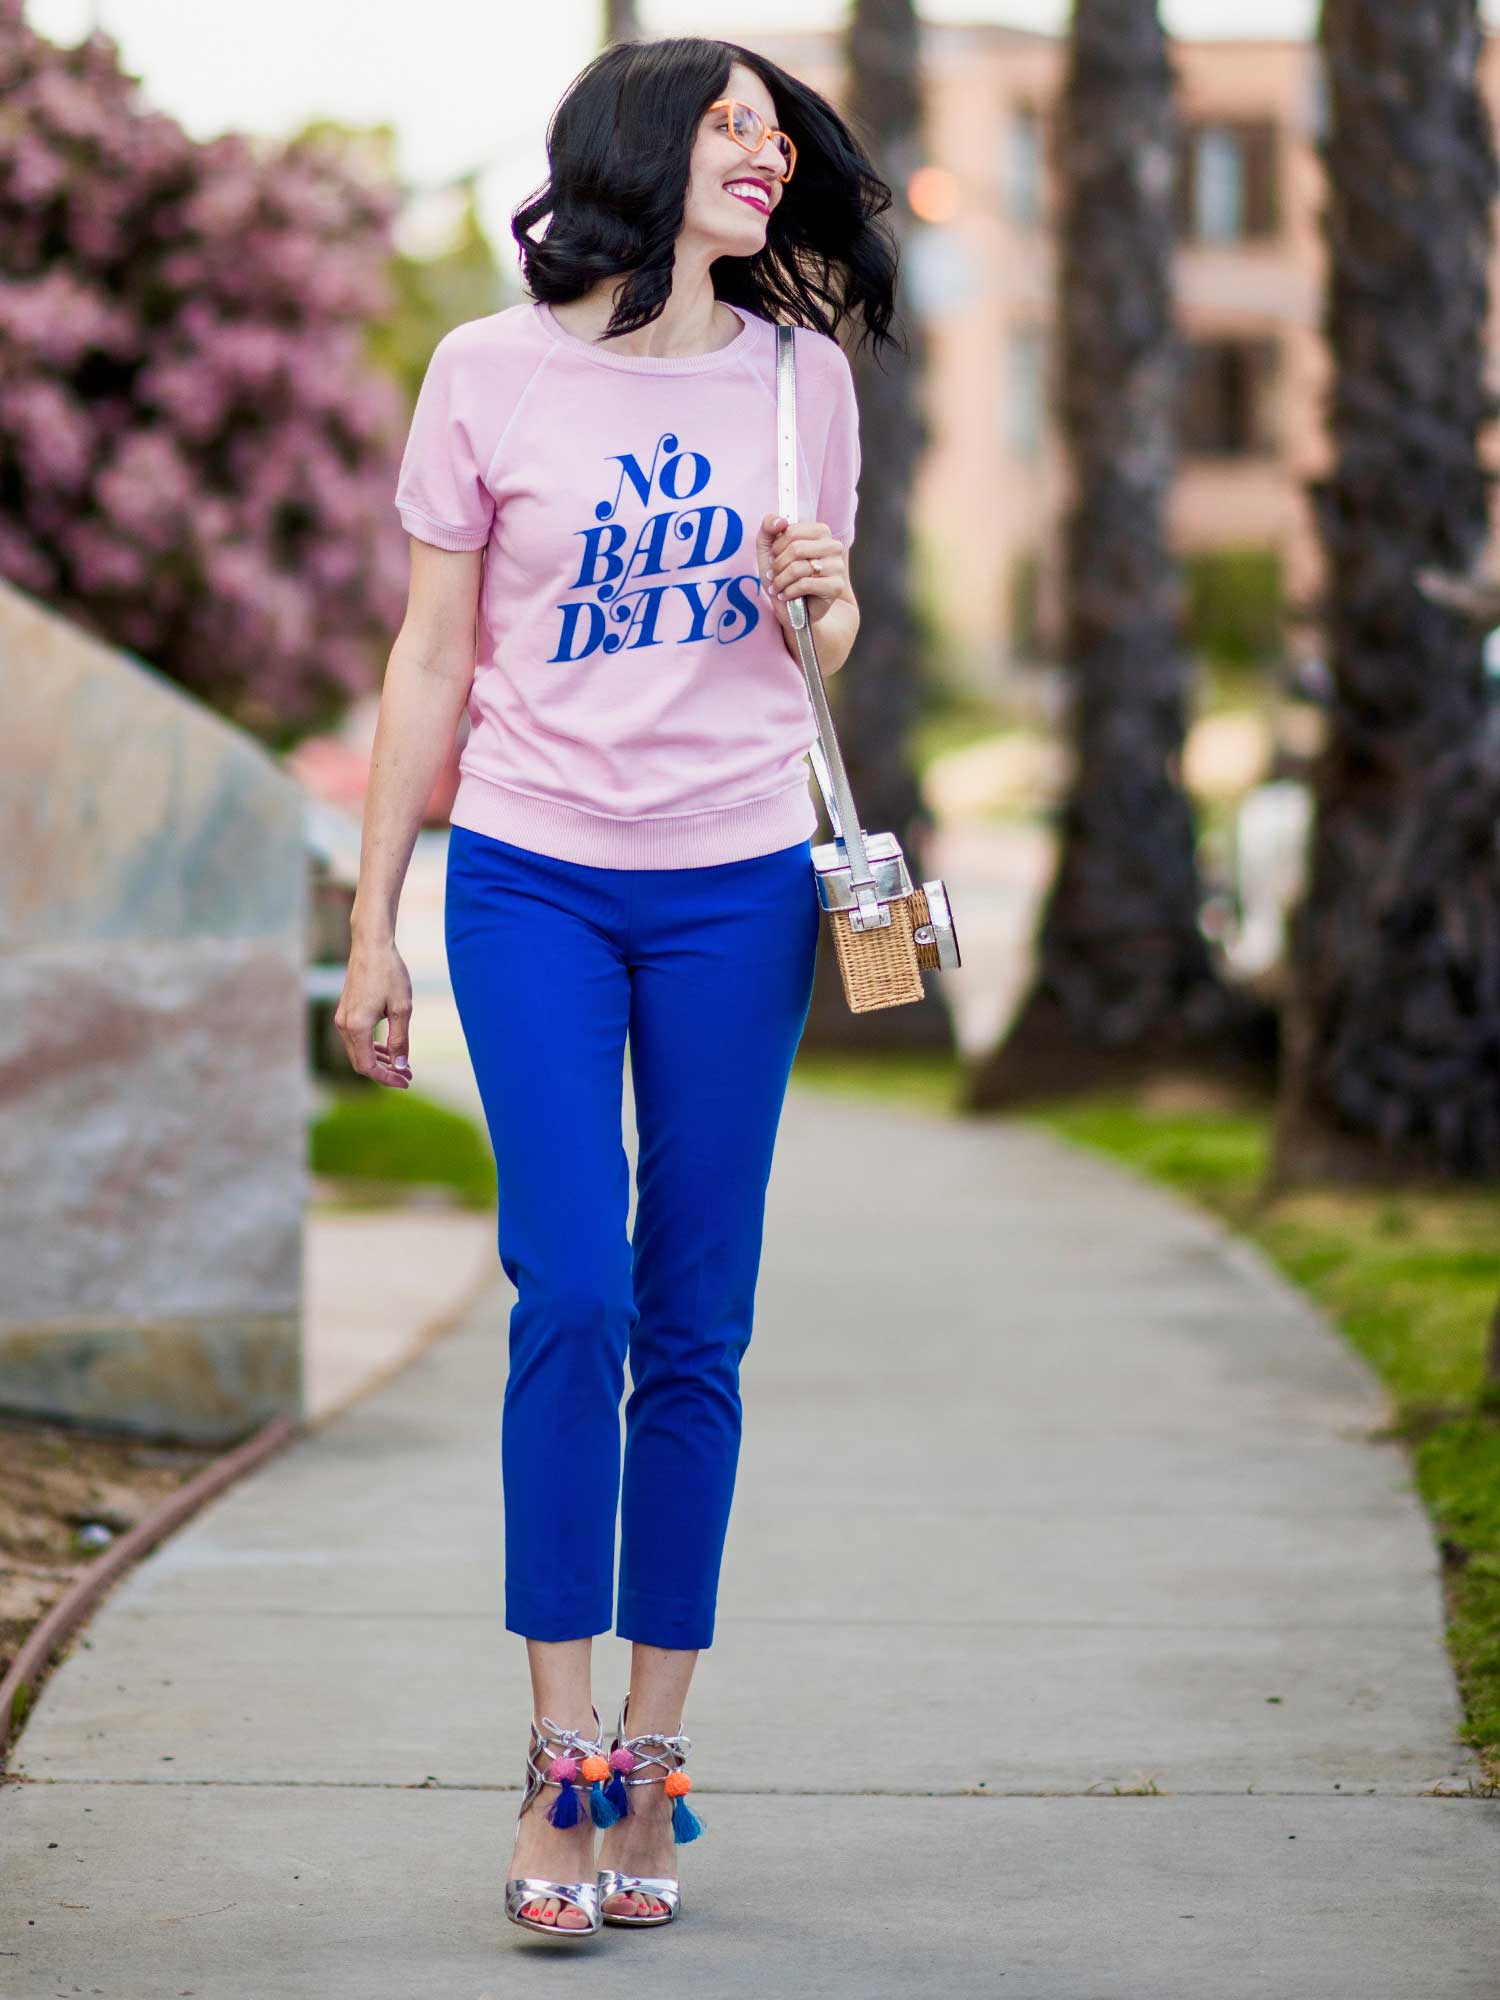 Jenna-Pilant-San-Diego-Style-Blogger-Lucky-Little-Mustardseed-How-To-Style-Ban.do's-'No-Bad-Days'-Sweater-5